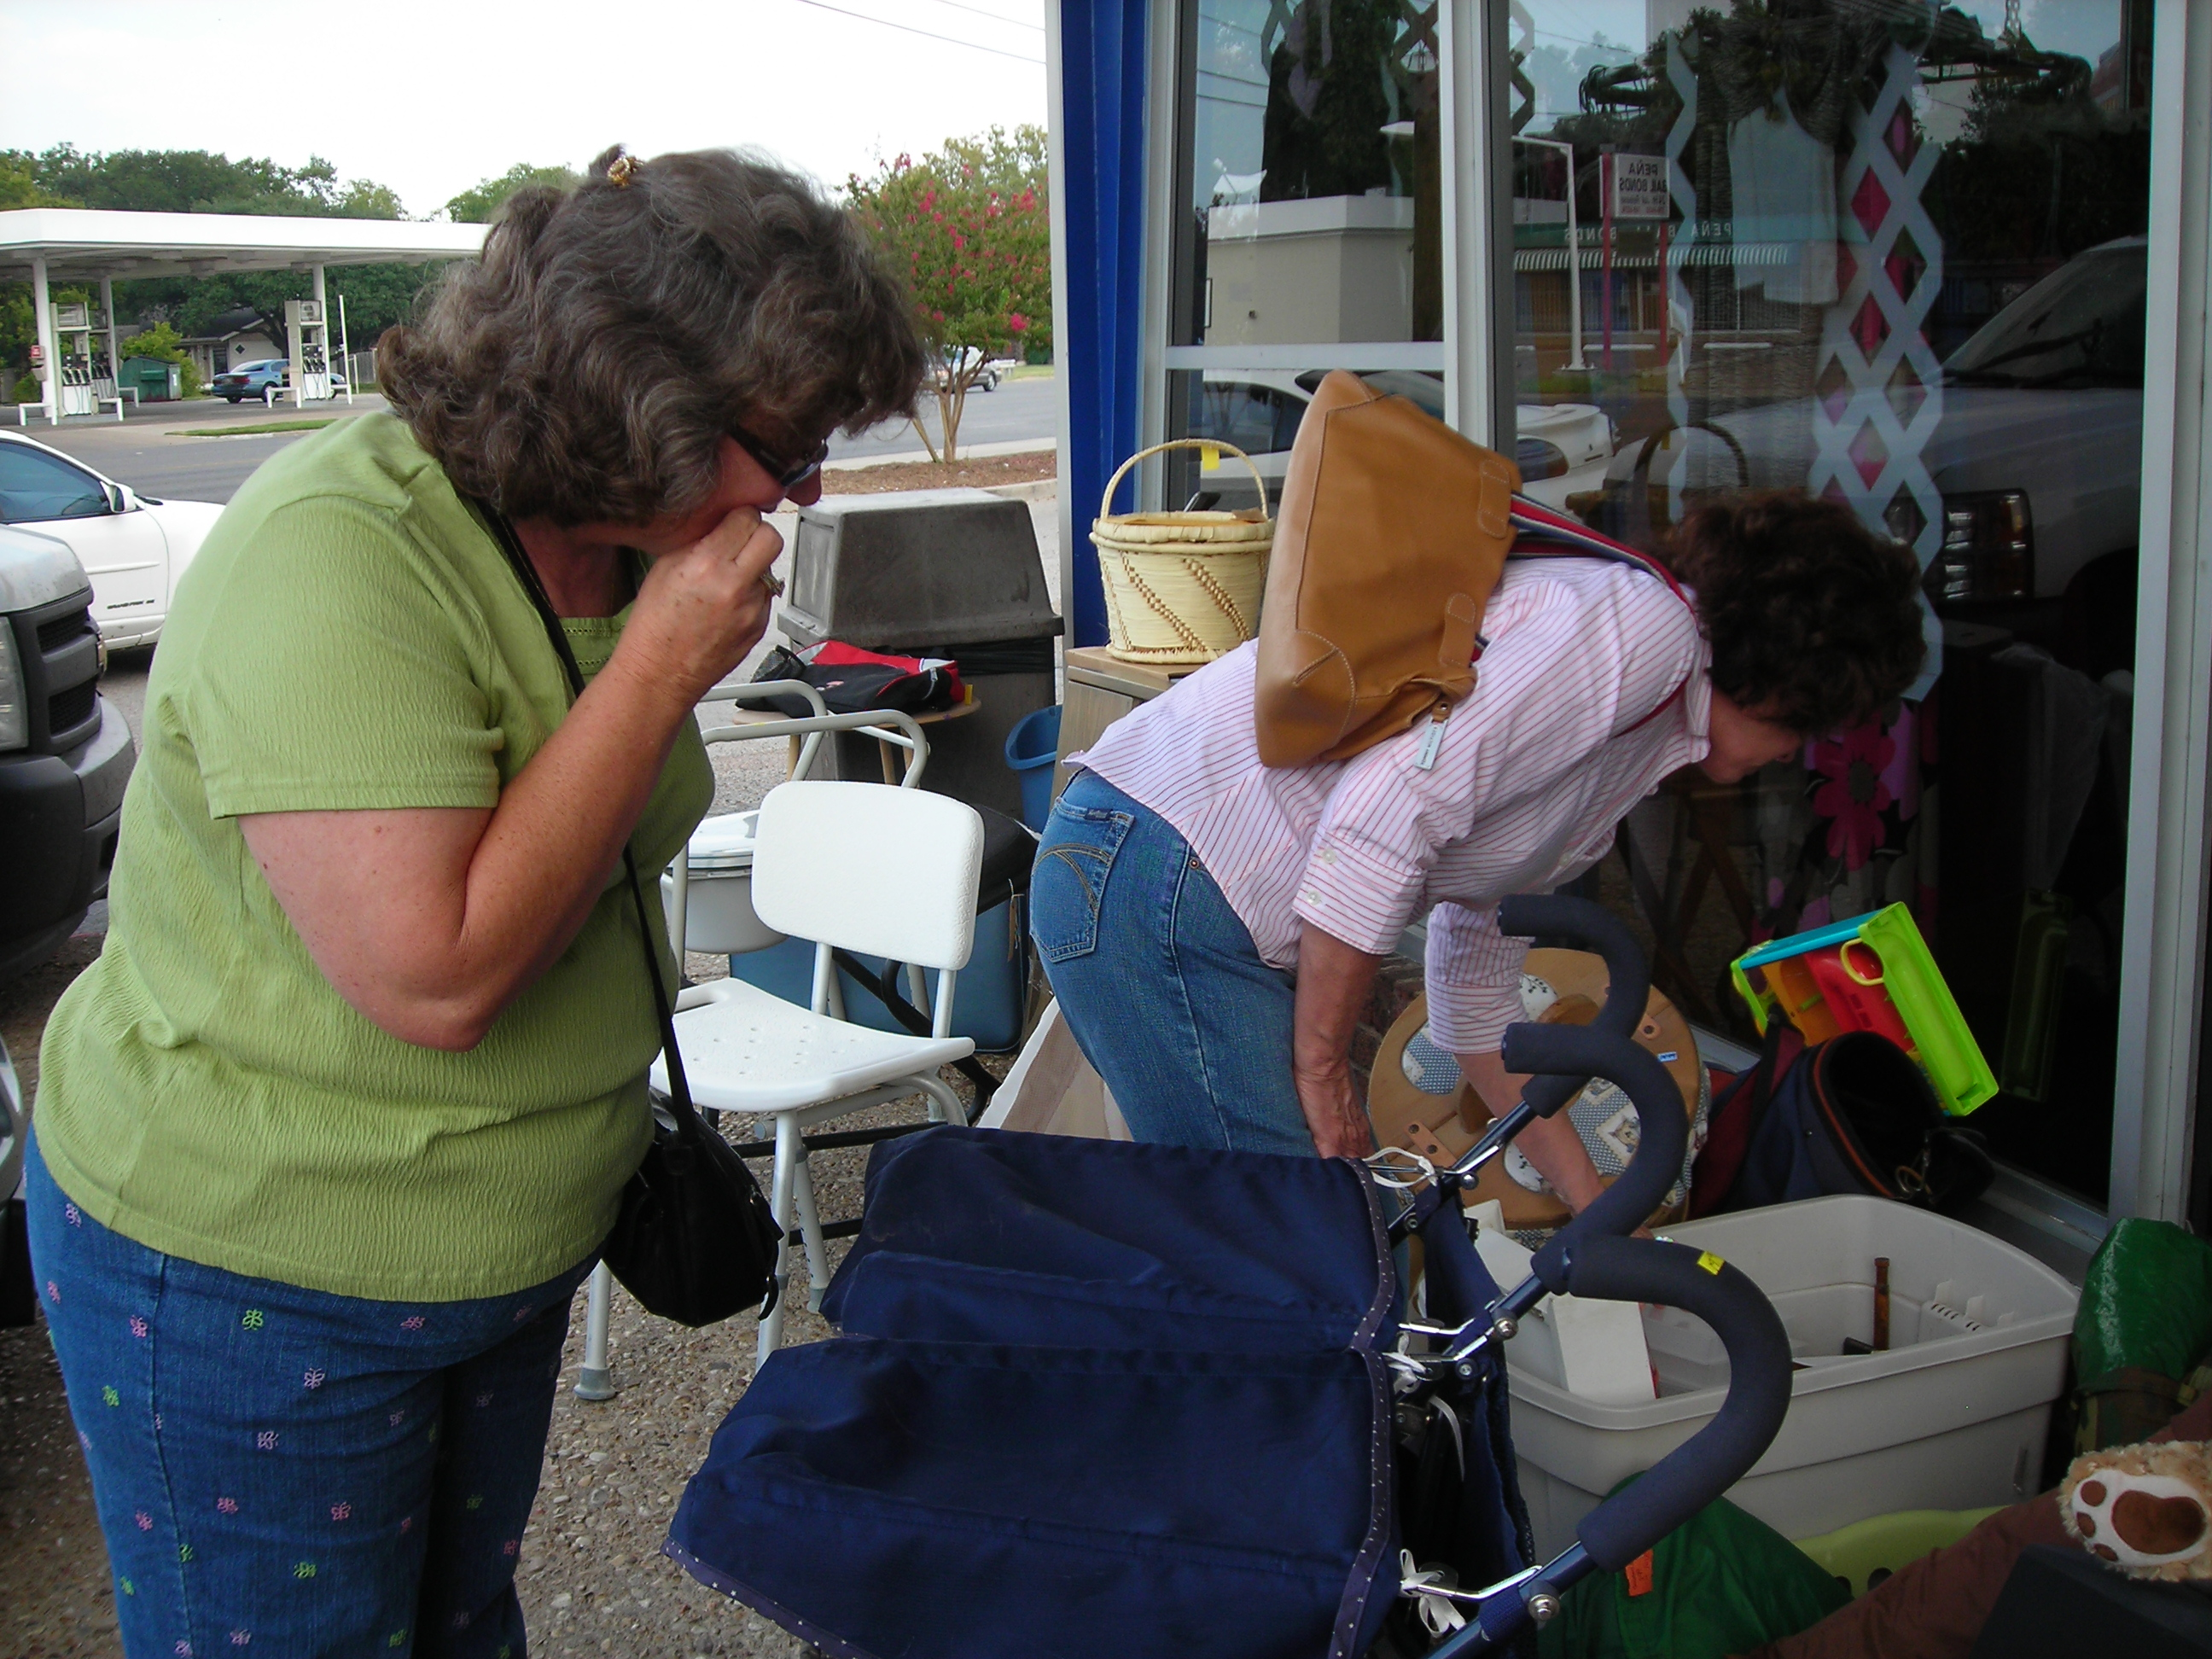 the girls getting down and dirty at the goodwill. you GO girls!